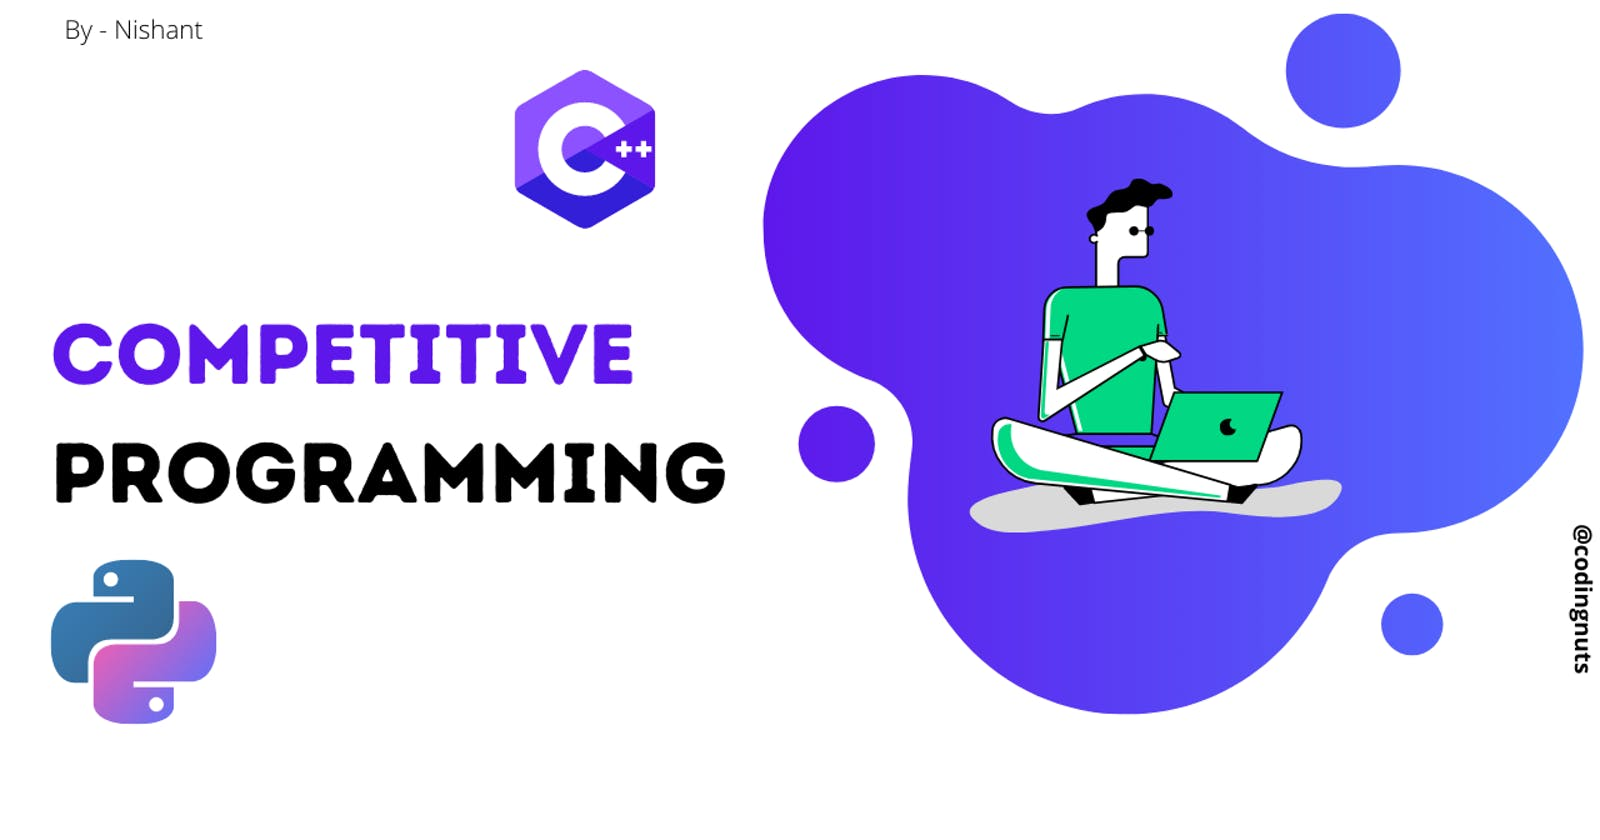 Road Map - Competitive Programming